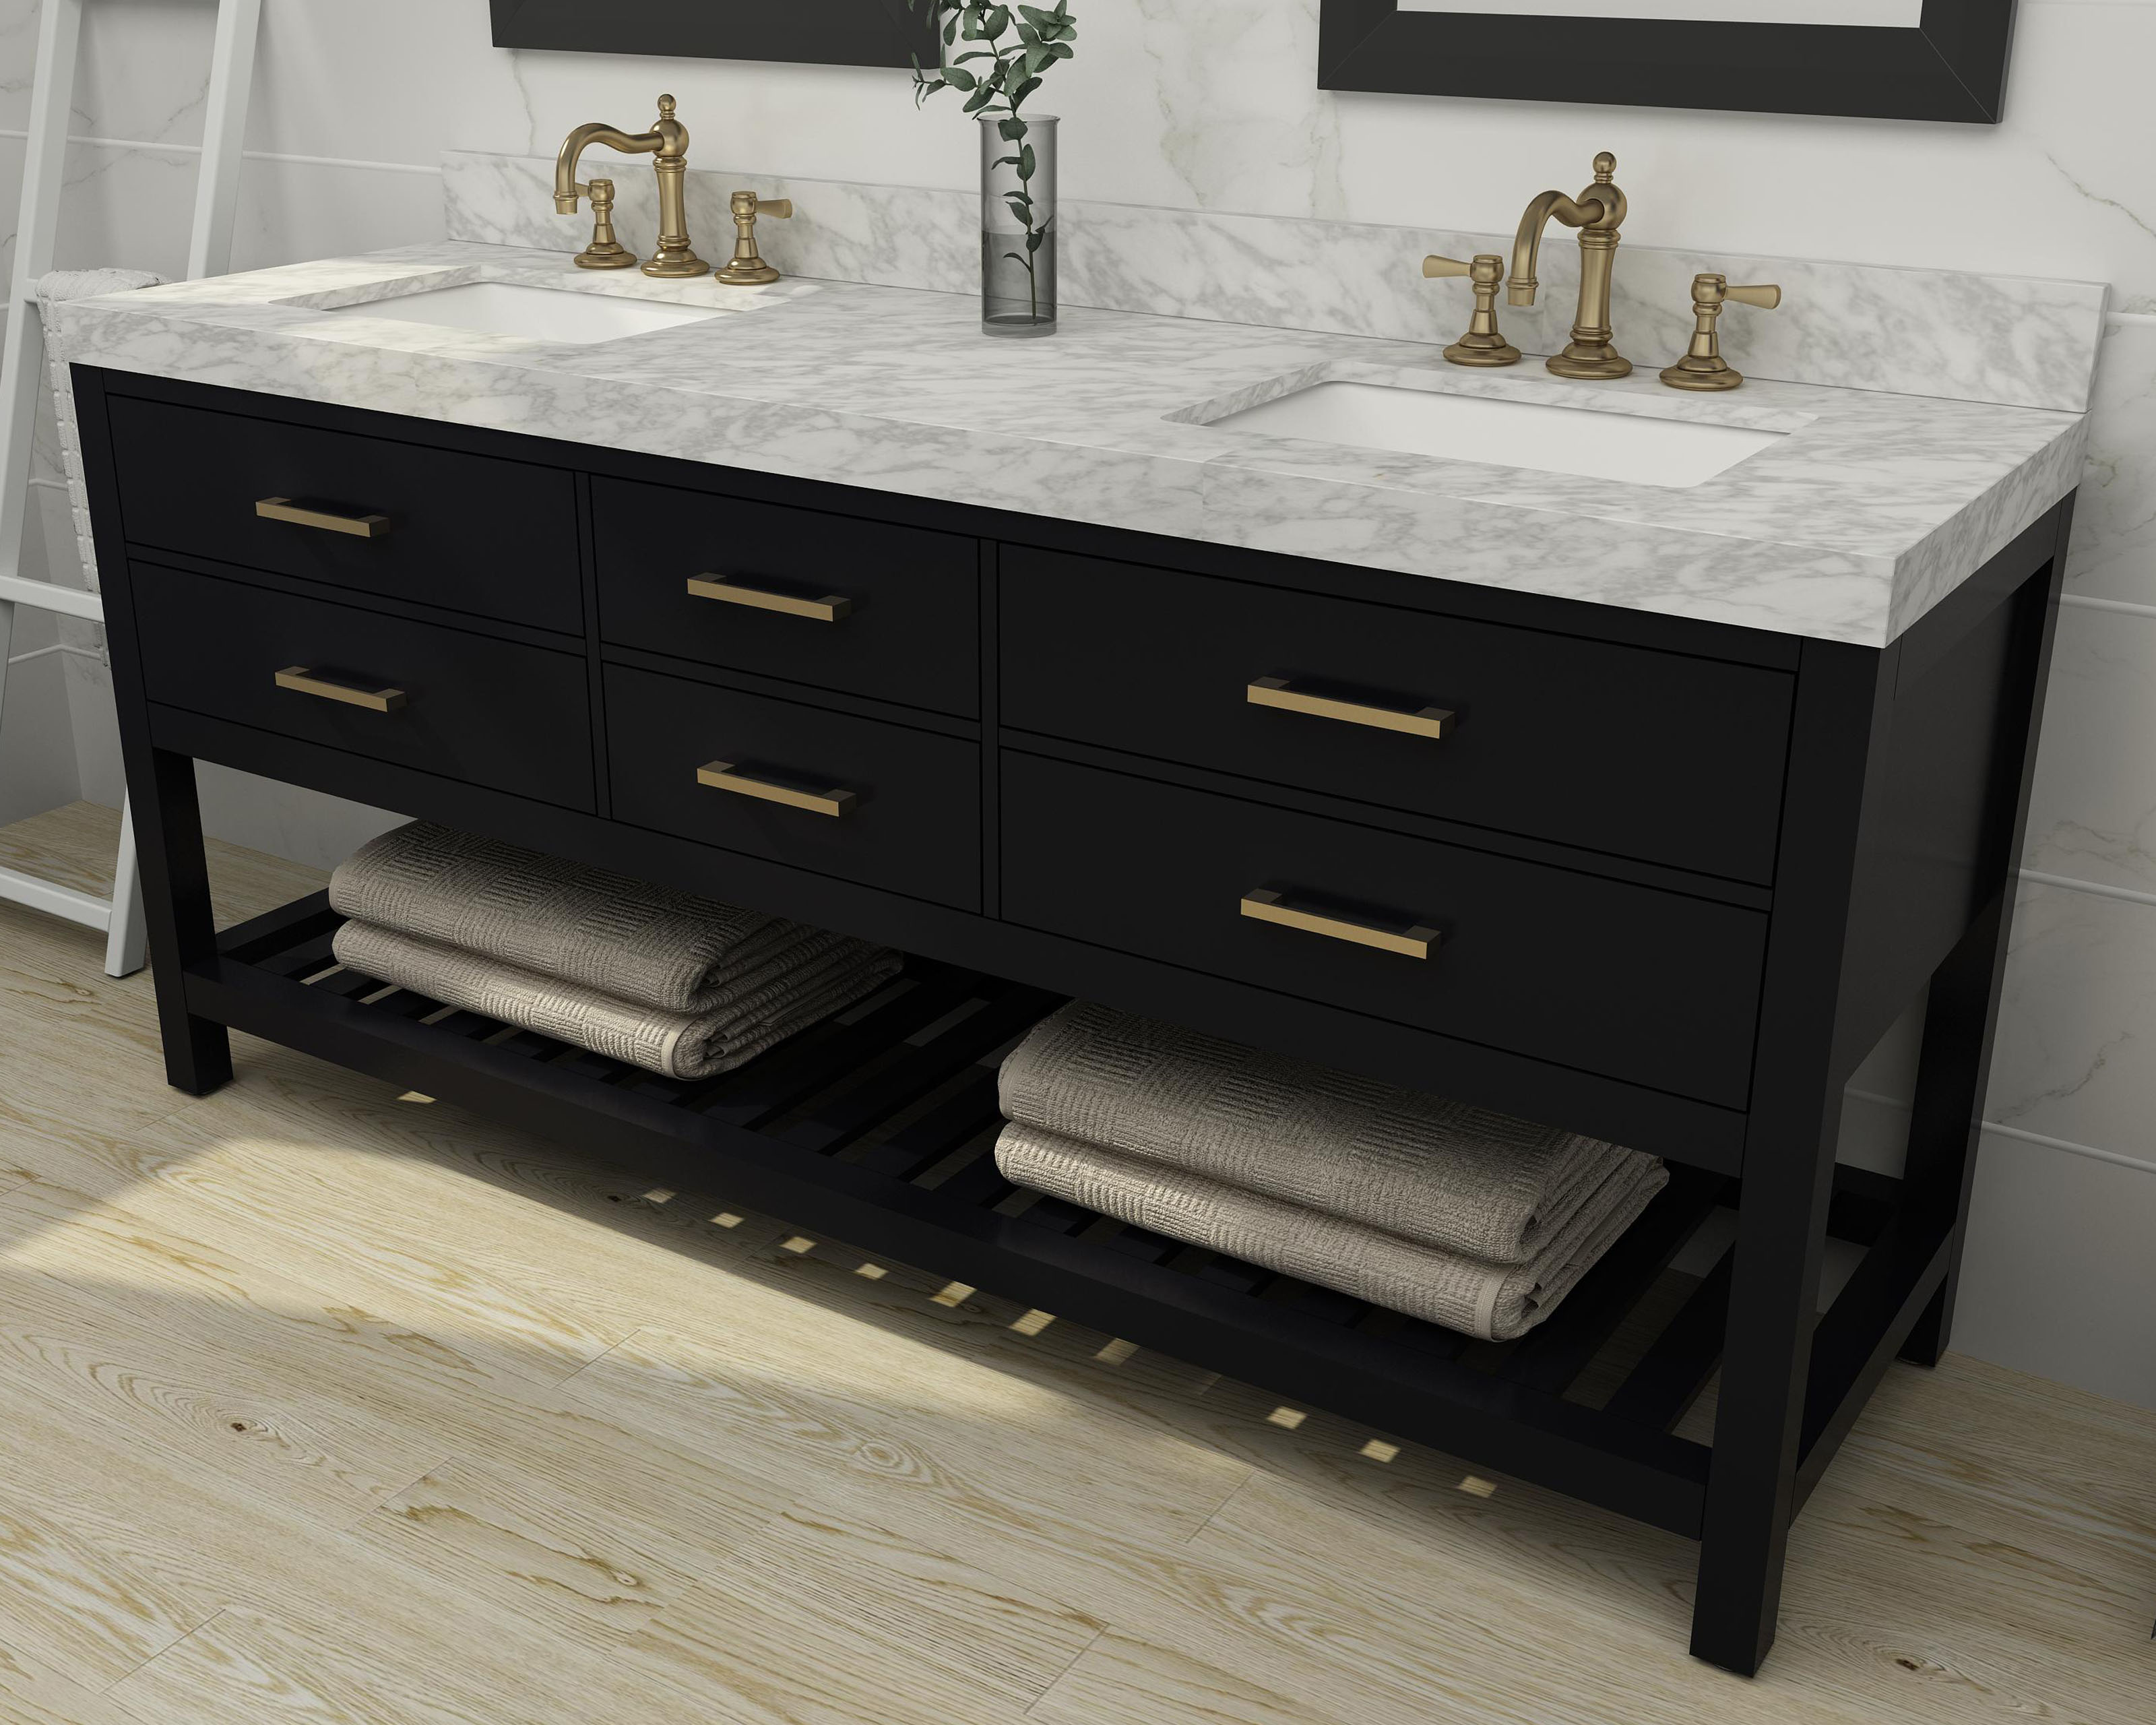 """72"""" Double Sink Bath Vanity Set in Black Onyx with Italian Carrara White Marble Vanity top and White Undermount Basin with Gold Hardware"""